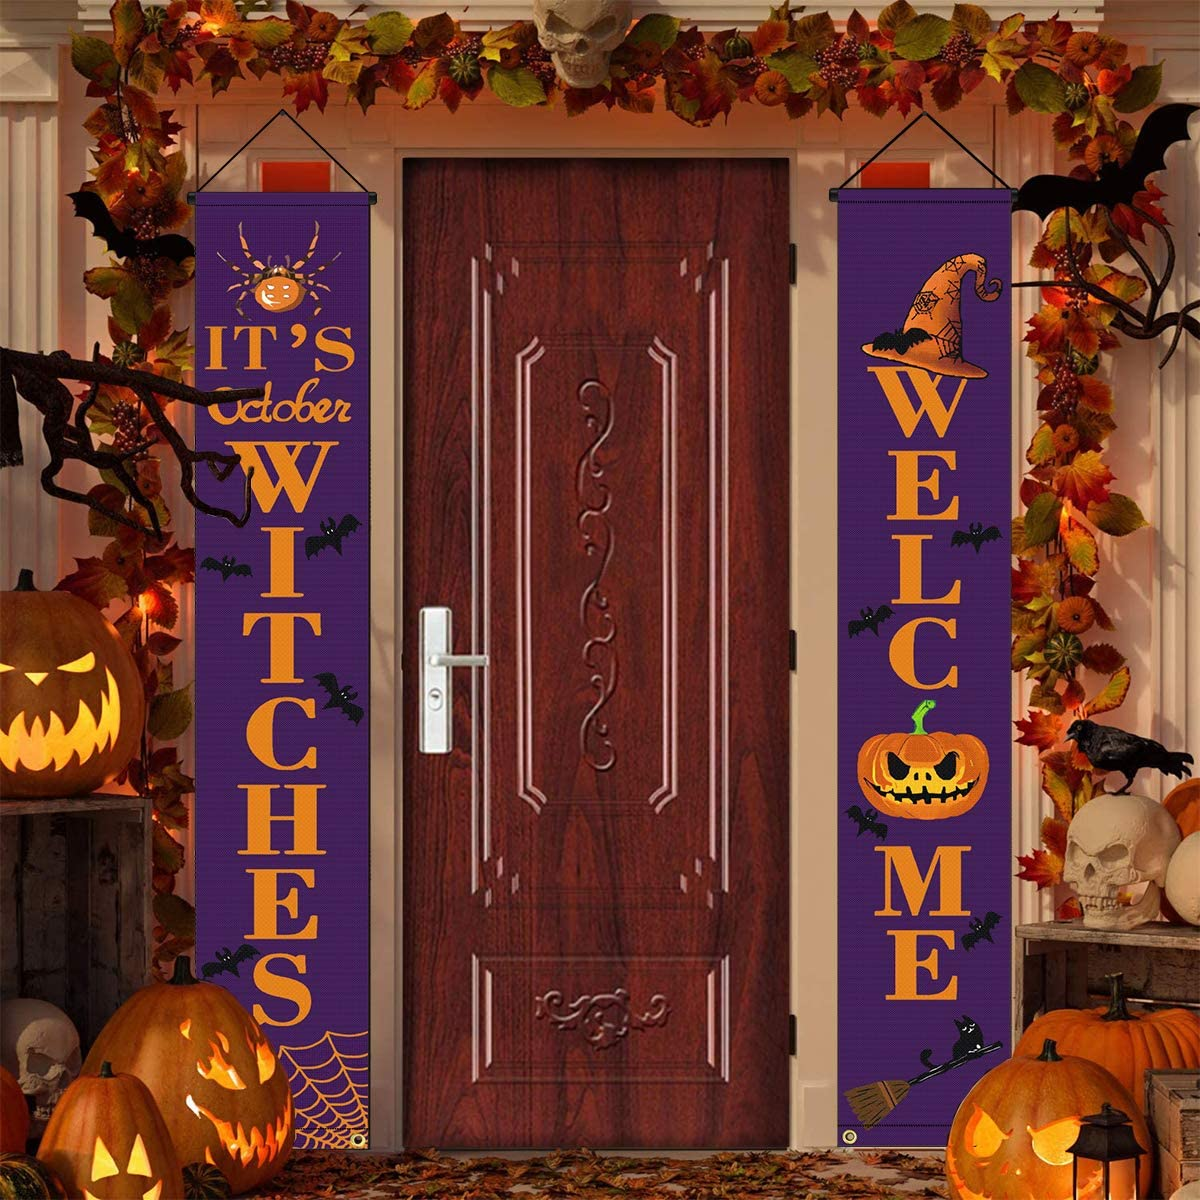 Evoio Halloween Decorations Witches Large Banner, Hanging Porch Signs for Outdoor Indoor, Front Door Welcome Decor with Witches Hat Pumpkin Spider Cat Bat Pattern for Holiday Home Yard Party(Purple)